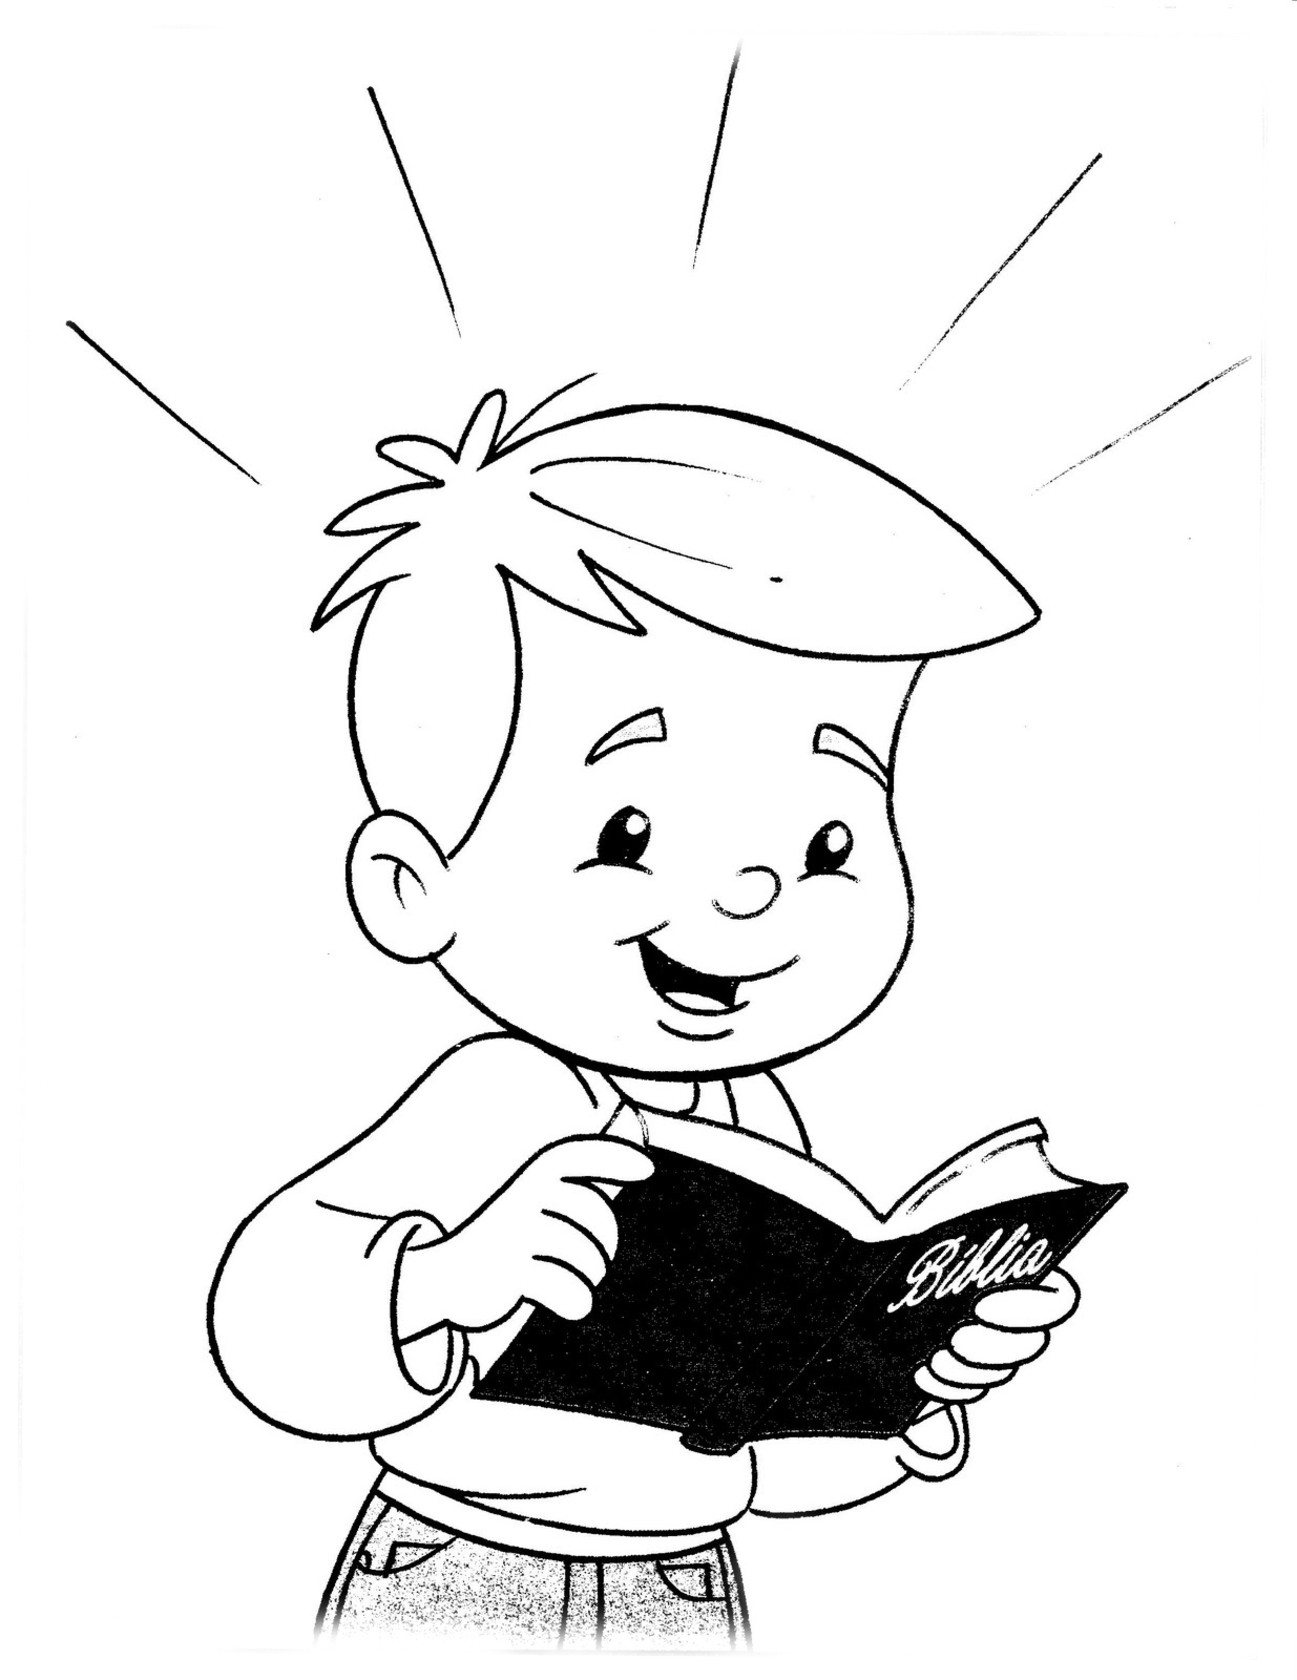 Printable coloring pages about the bible - Printable Christian Coloring Pages For Kids